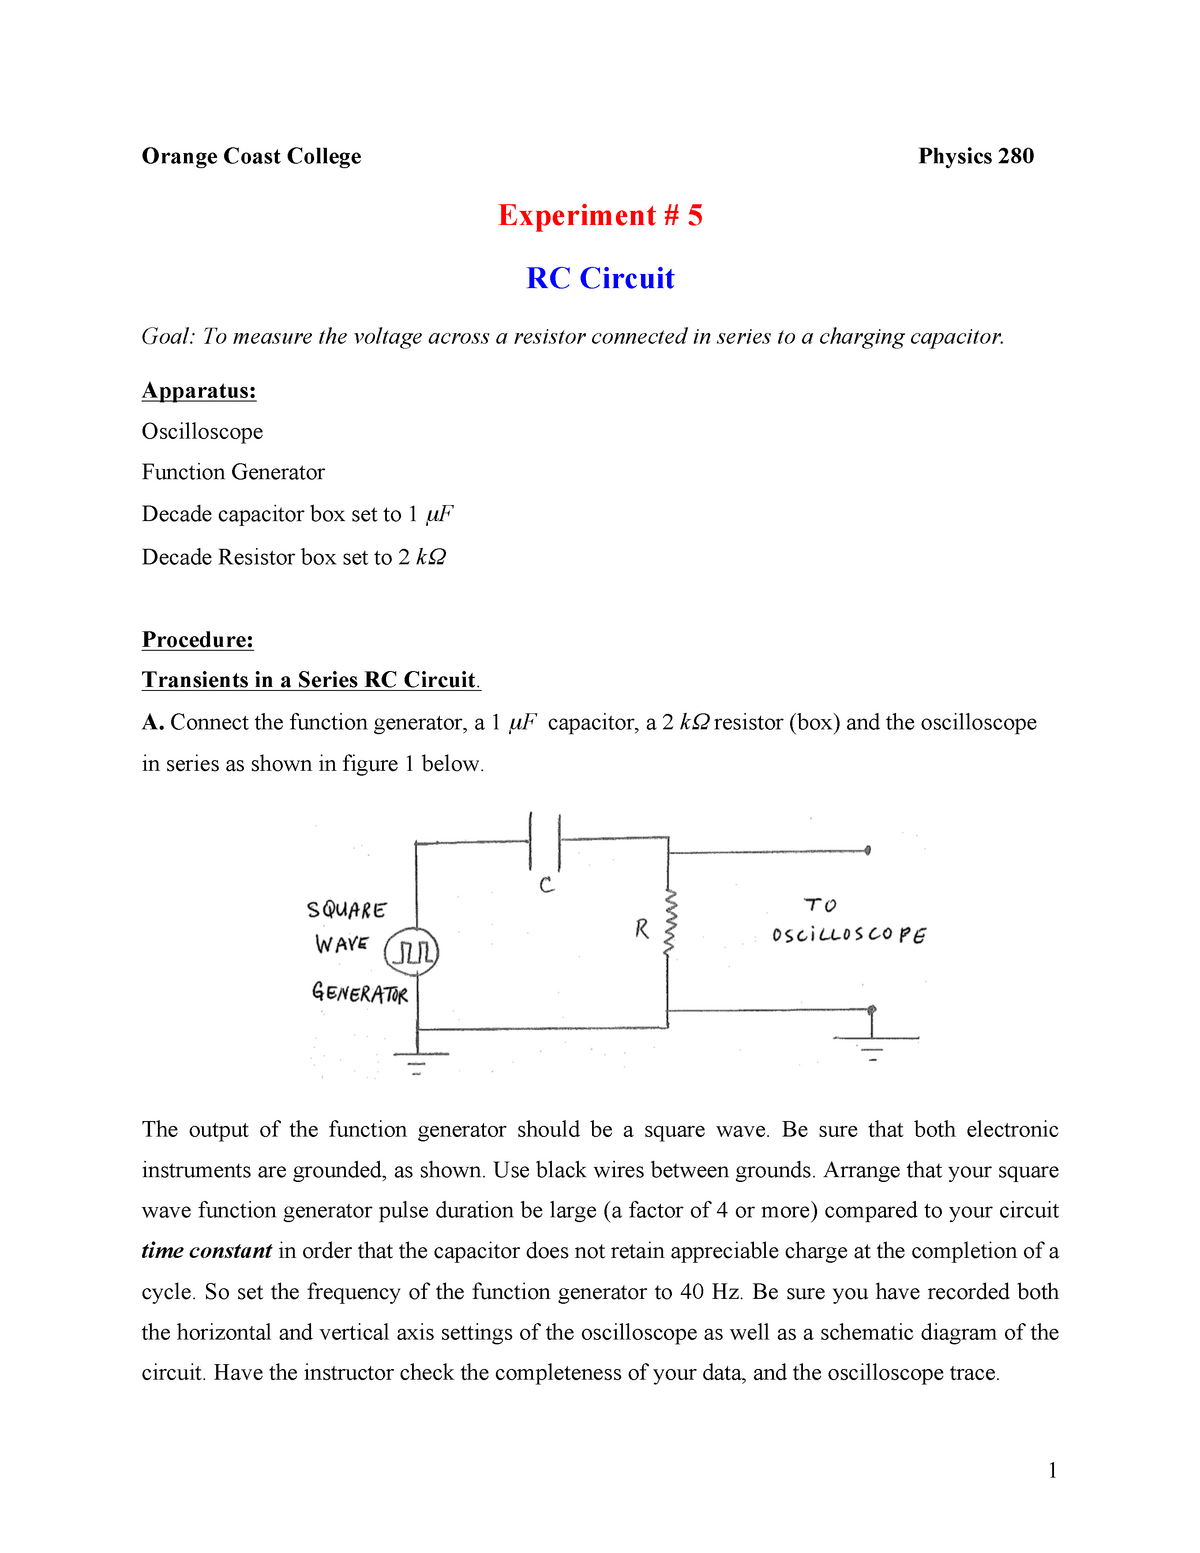 Lab 5 RC Circuit revised - PHYS A280: Calculus Based Phys:Elec/Mag